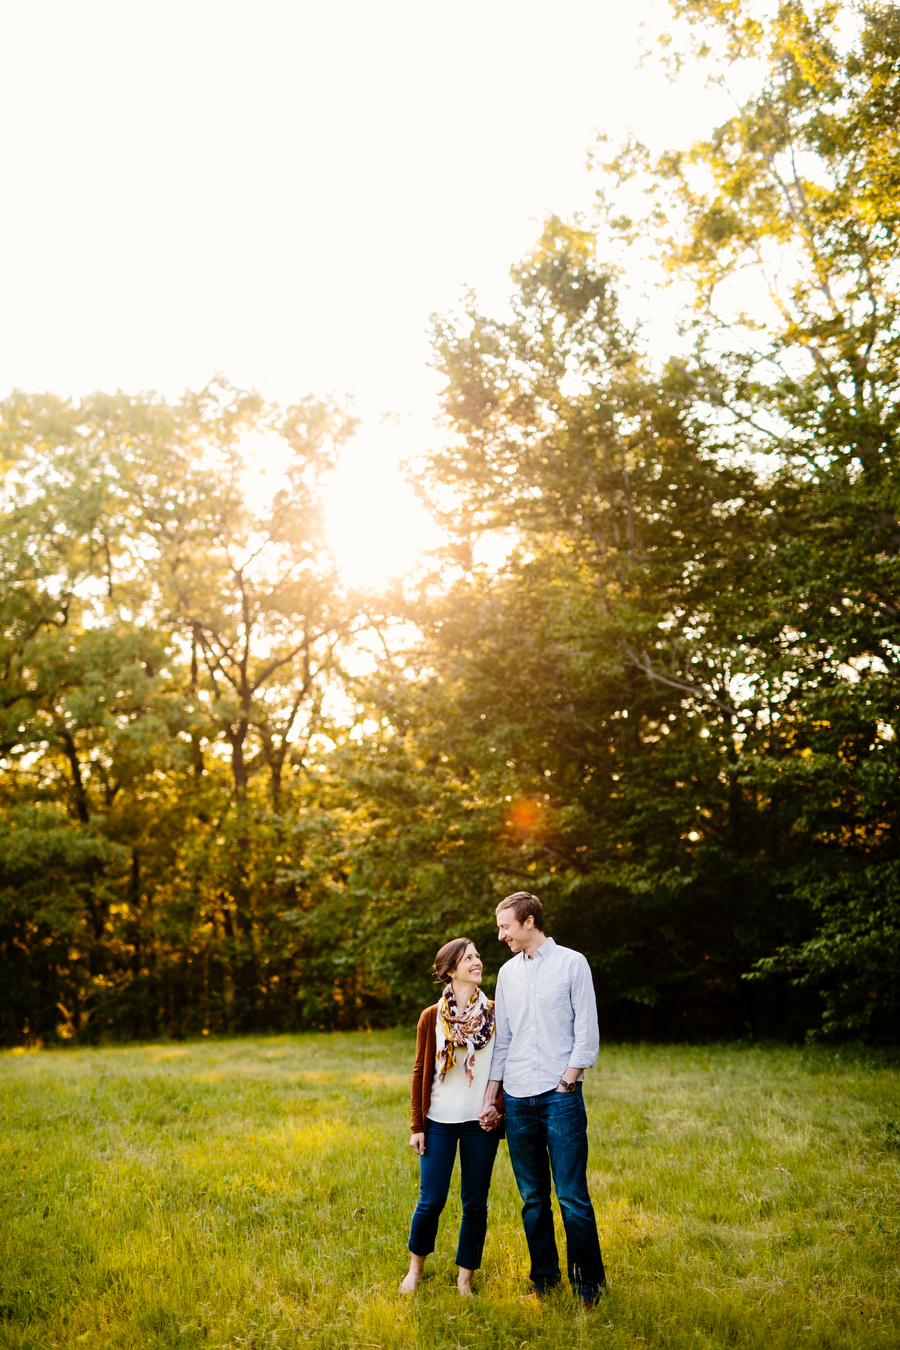 Watertown_Belmont_Engagement_Photography-100.JPG